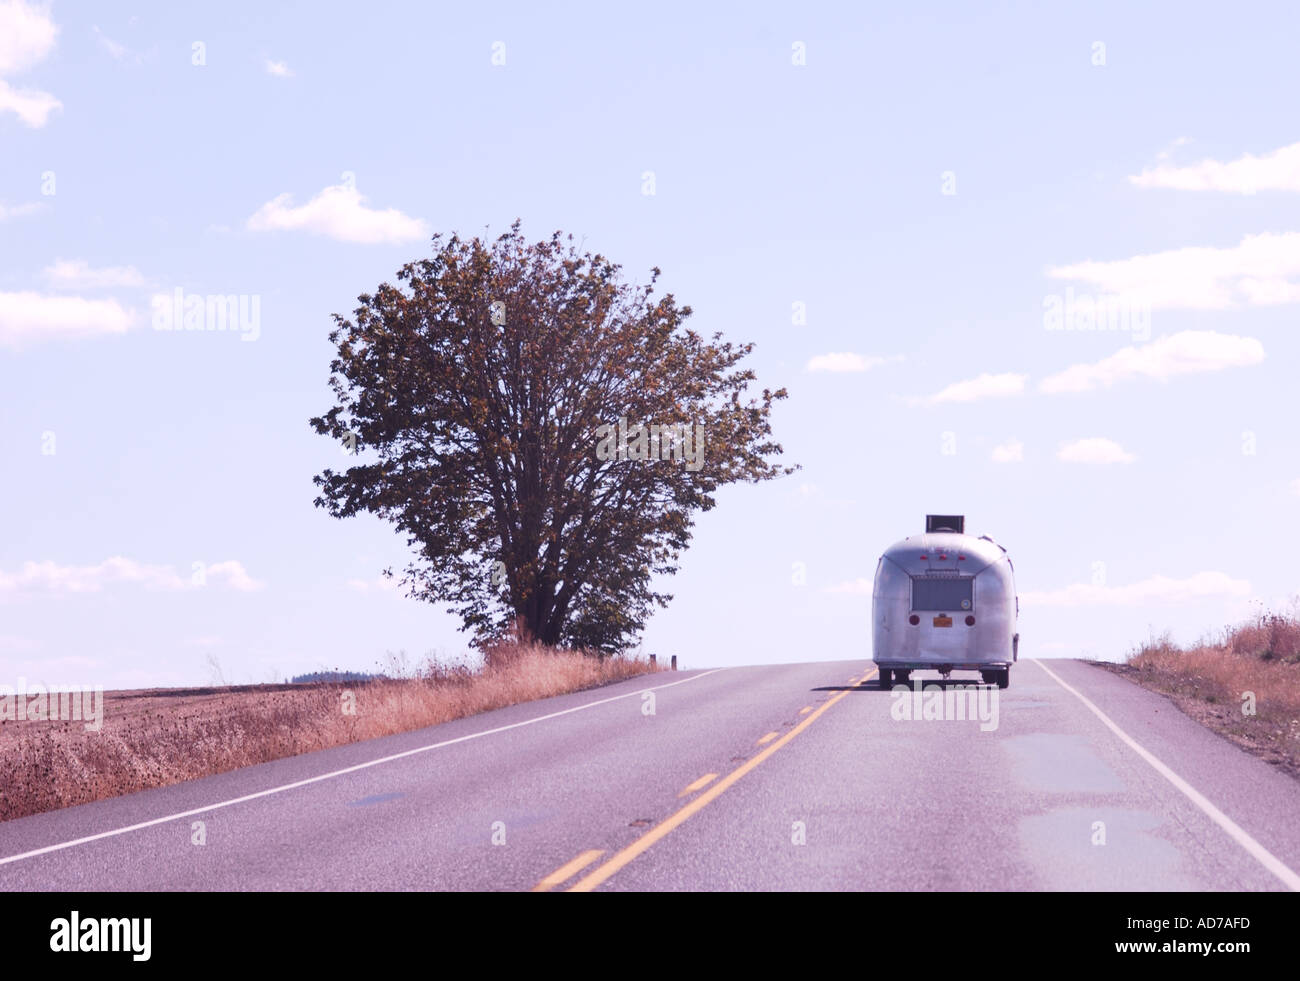 Airstream trailer on open country road - Stock Image